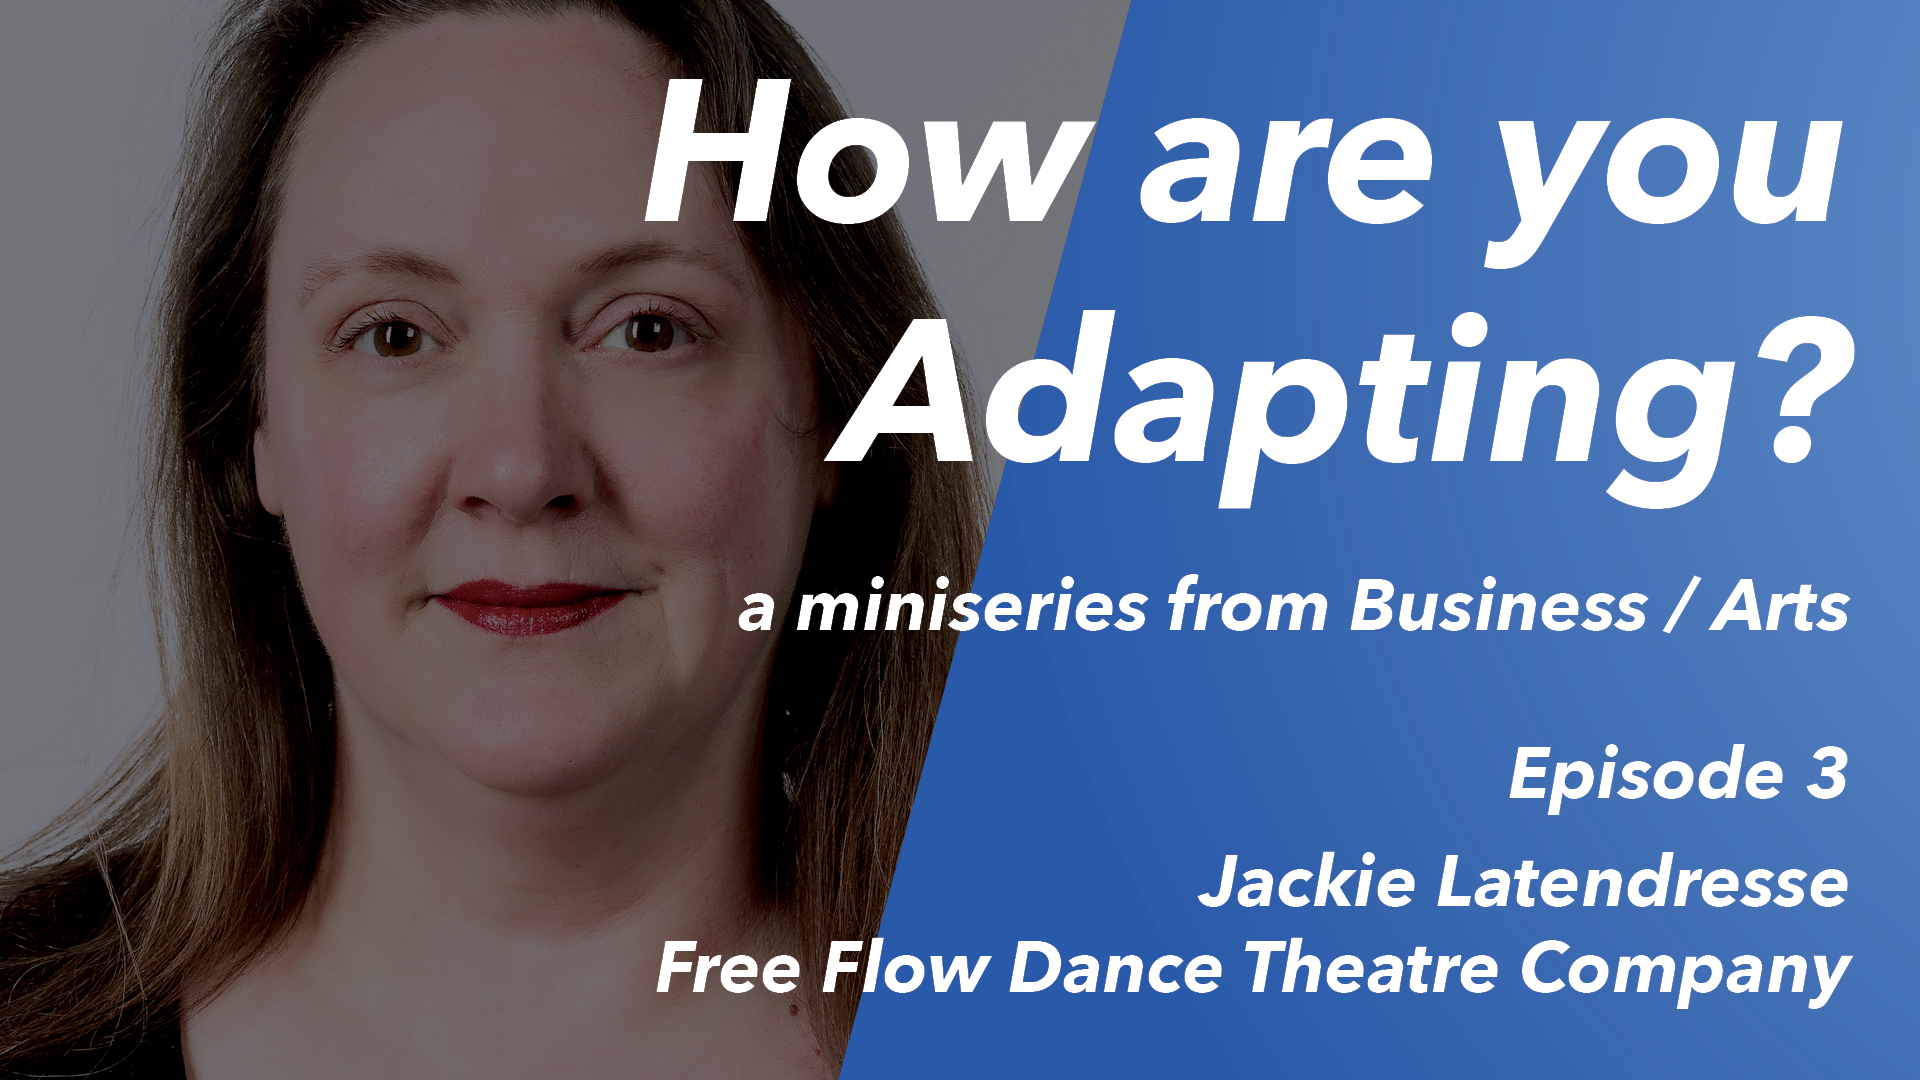 How are you Adapting? Ep 3 – Jackie Latendresse (Free Flow Dance Theatre Company)